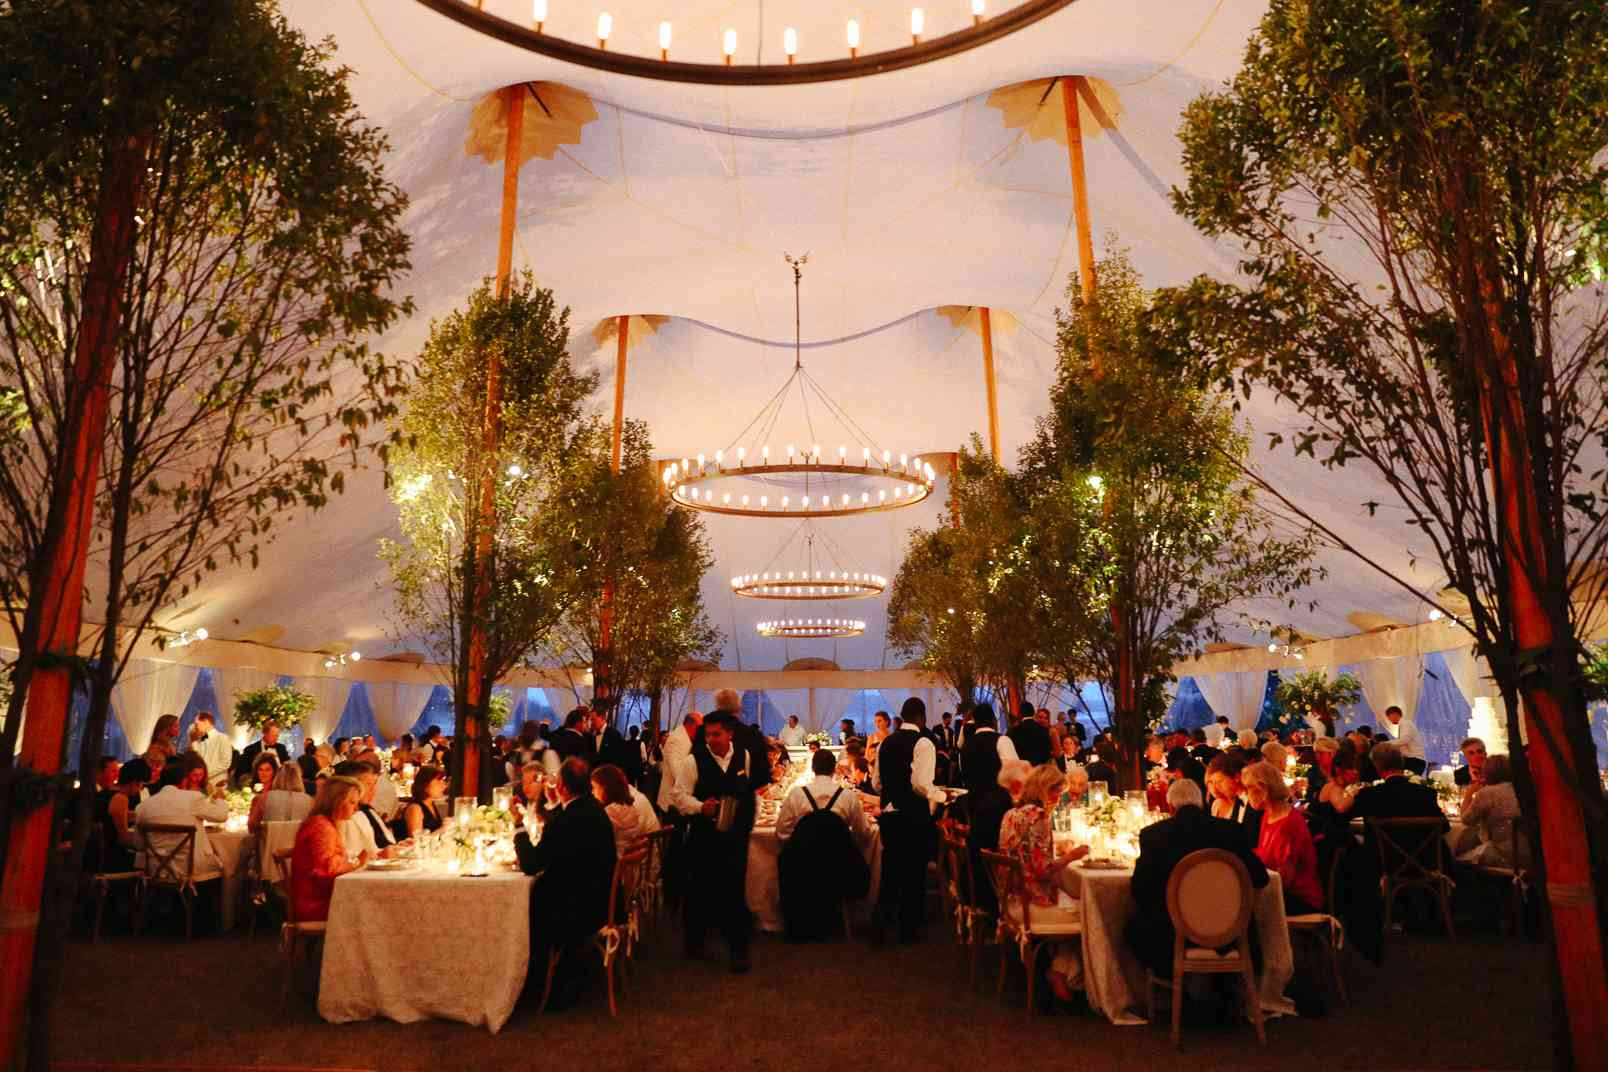 Every Type of Wedding Tent for Your Outdoor Reception